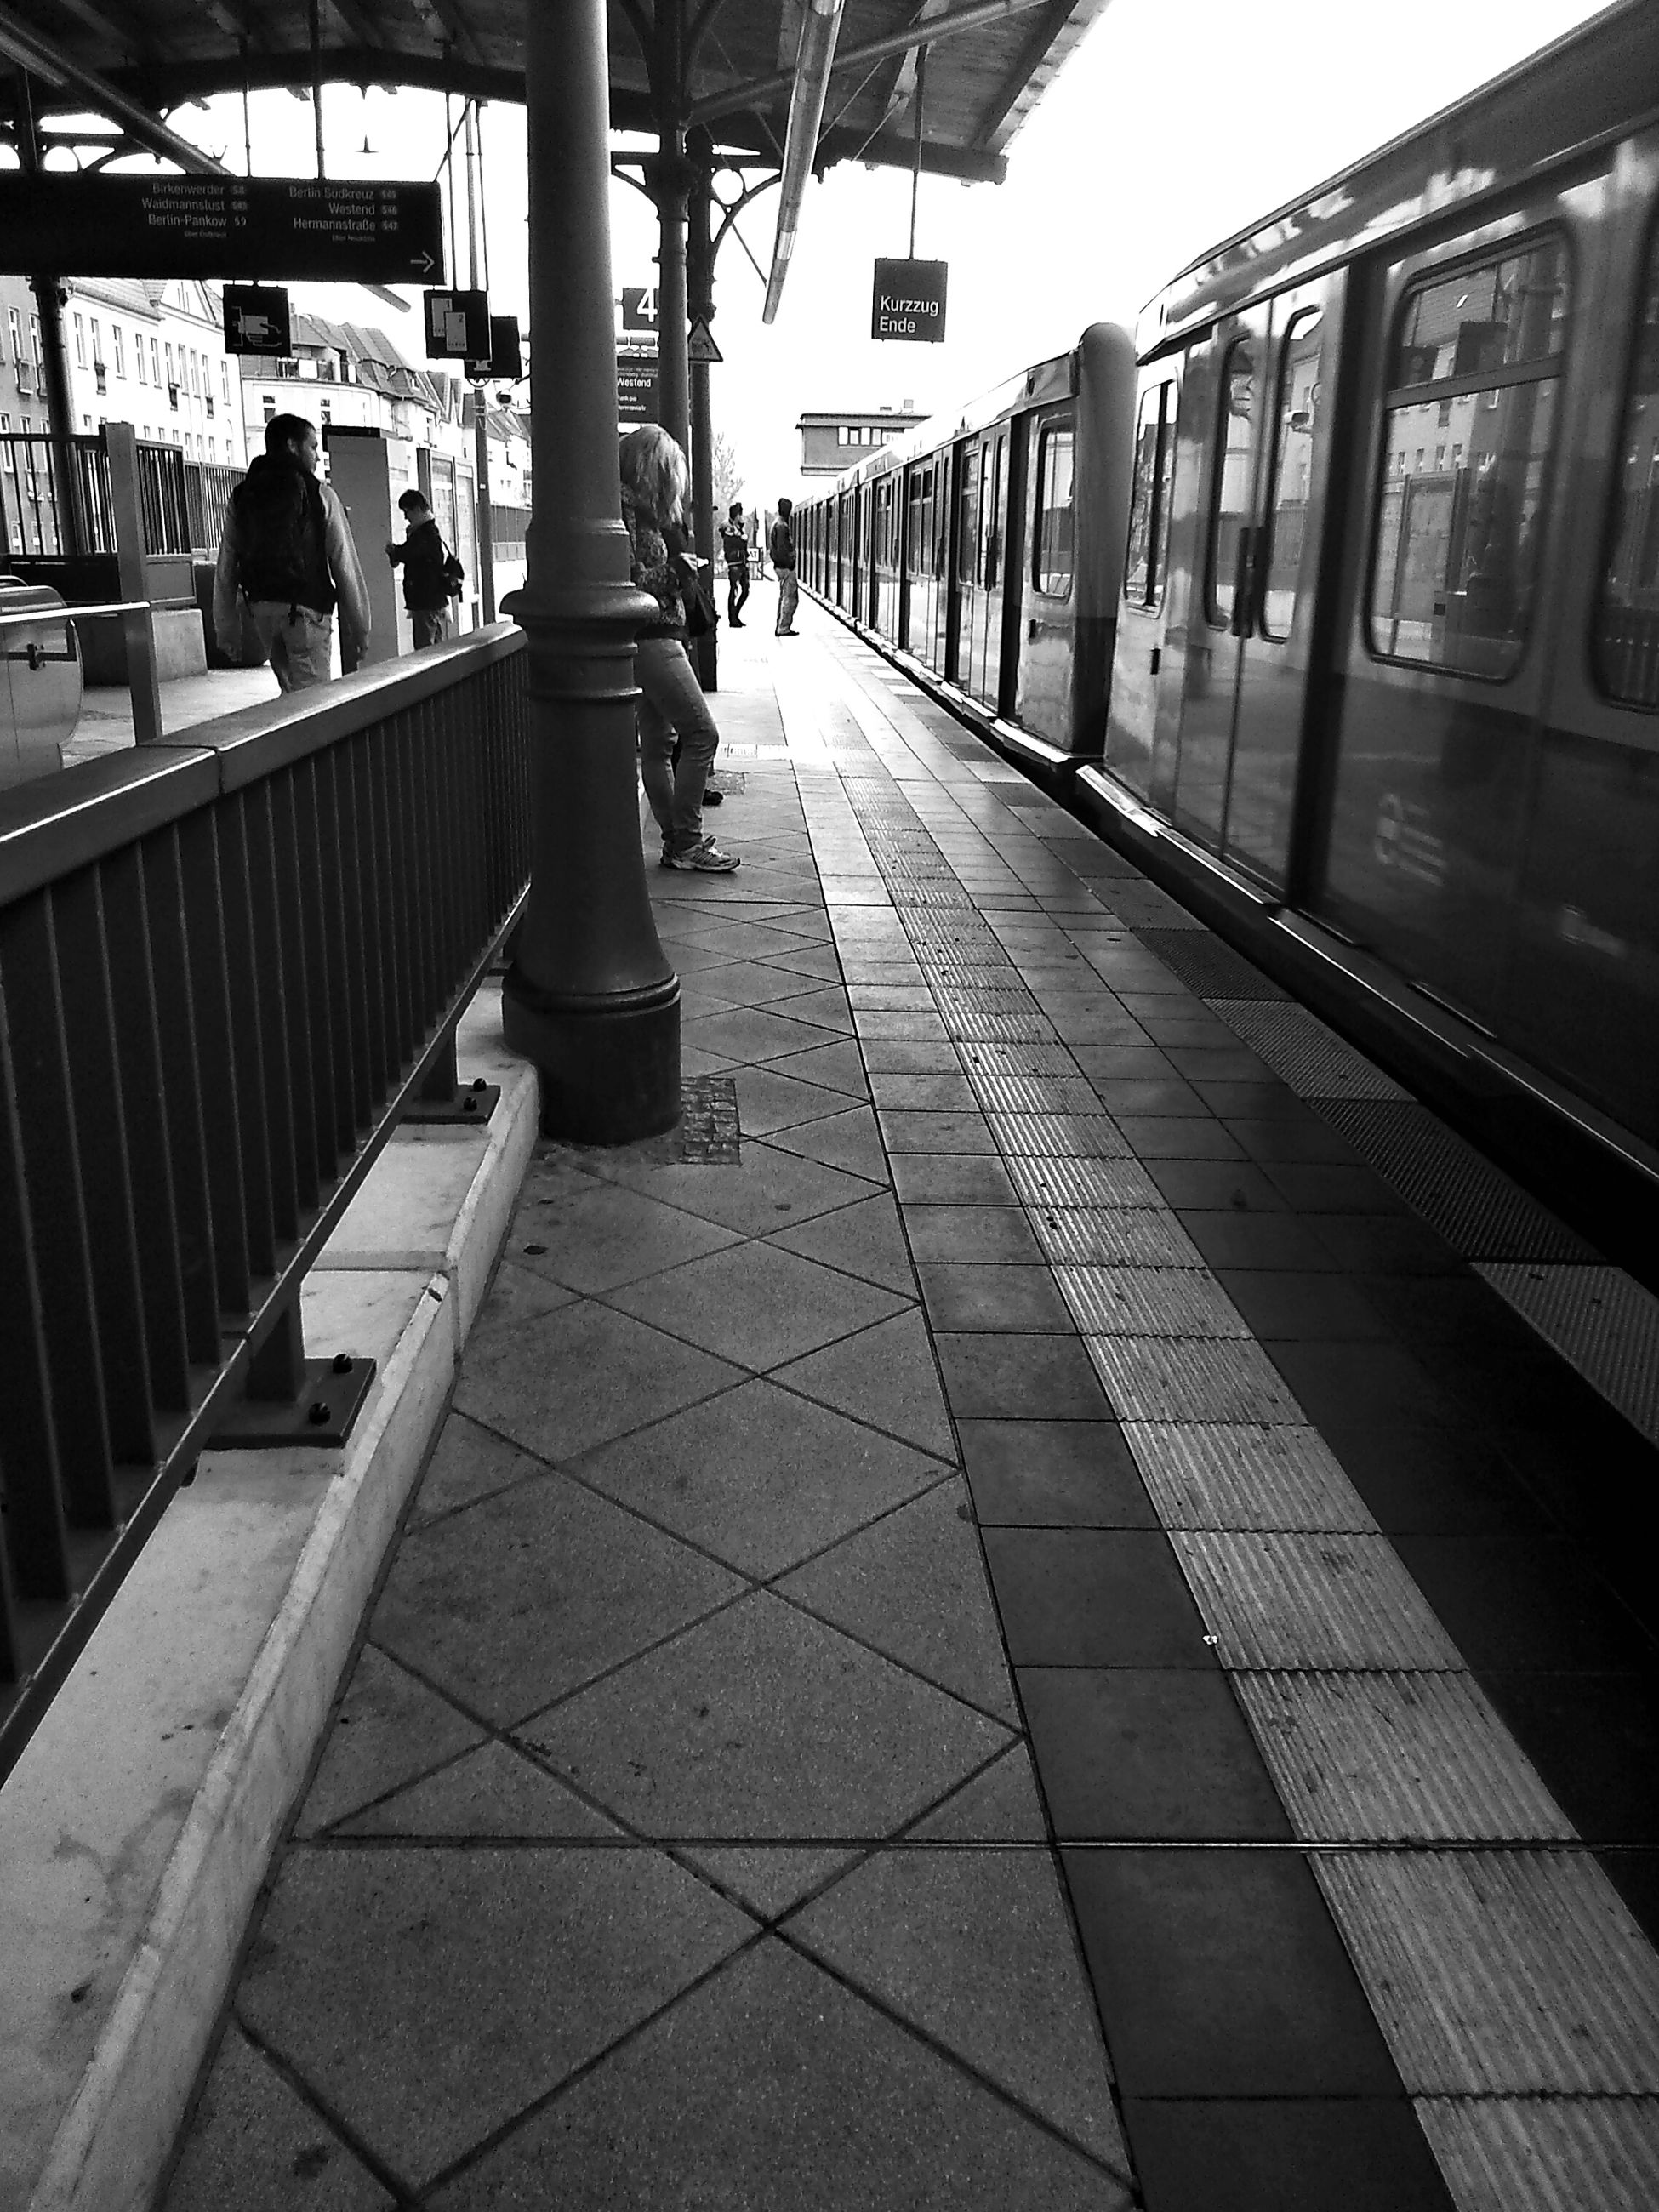 built structure, architecture, railroad station platform, railroad station, railroad track, public transportation, rail transportation, transportation, the way forward, incidental people, travel, building exterior, railing, empty, tiled floor, city life, indoors, public transport, city